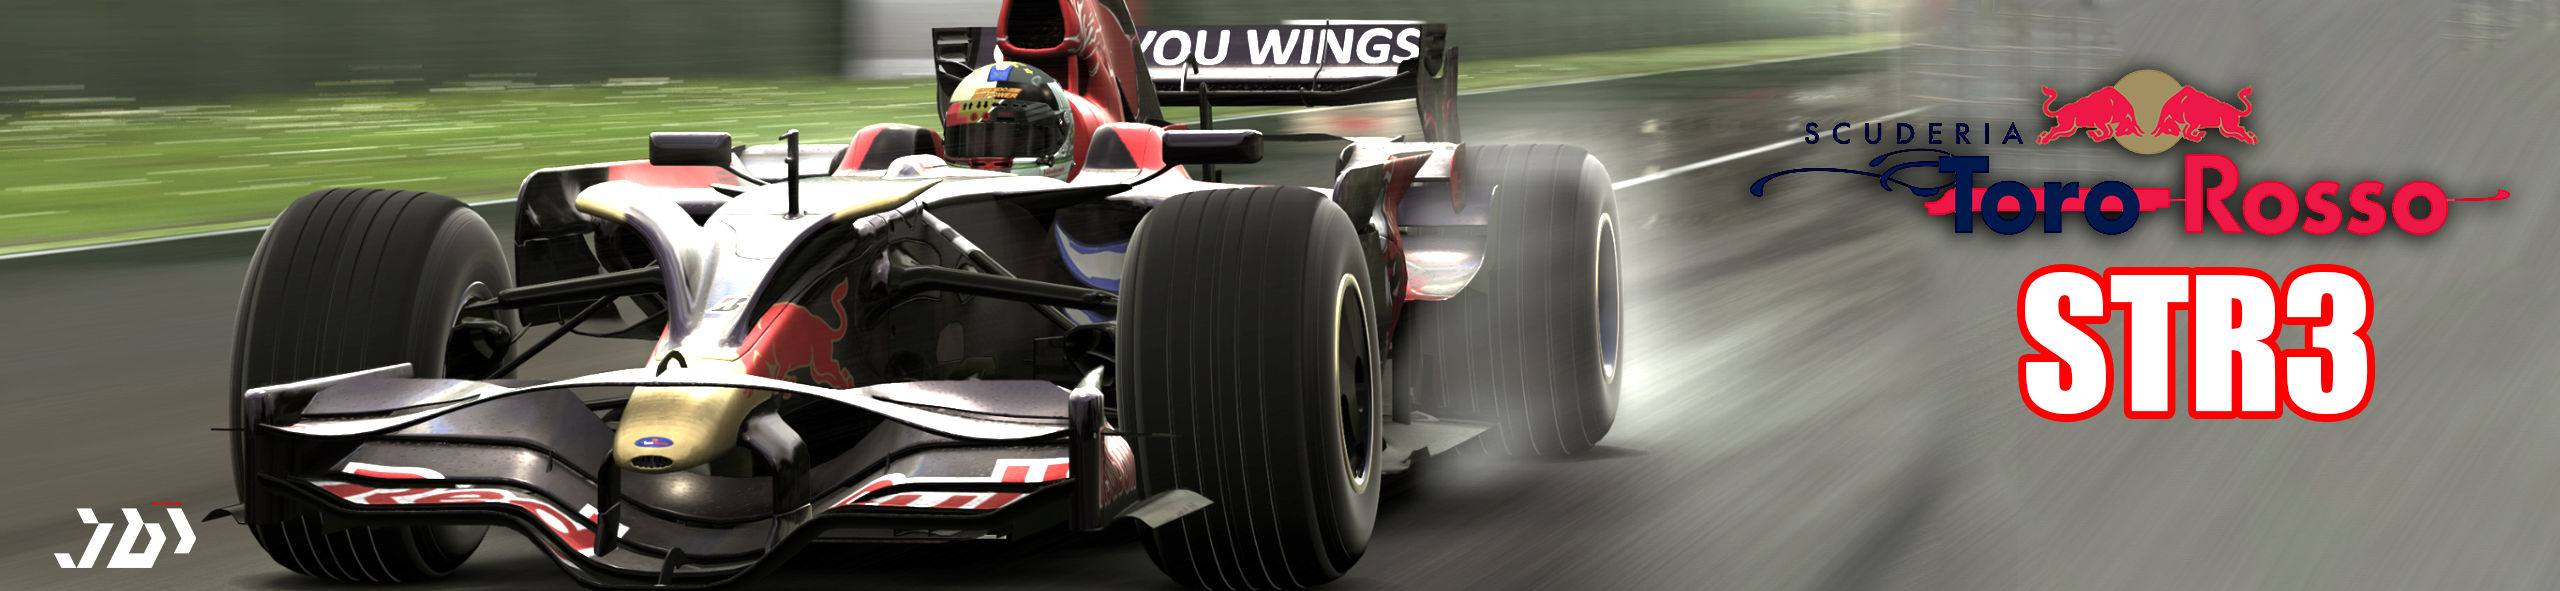 2008 Tororosso  Livery.png